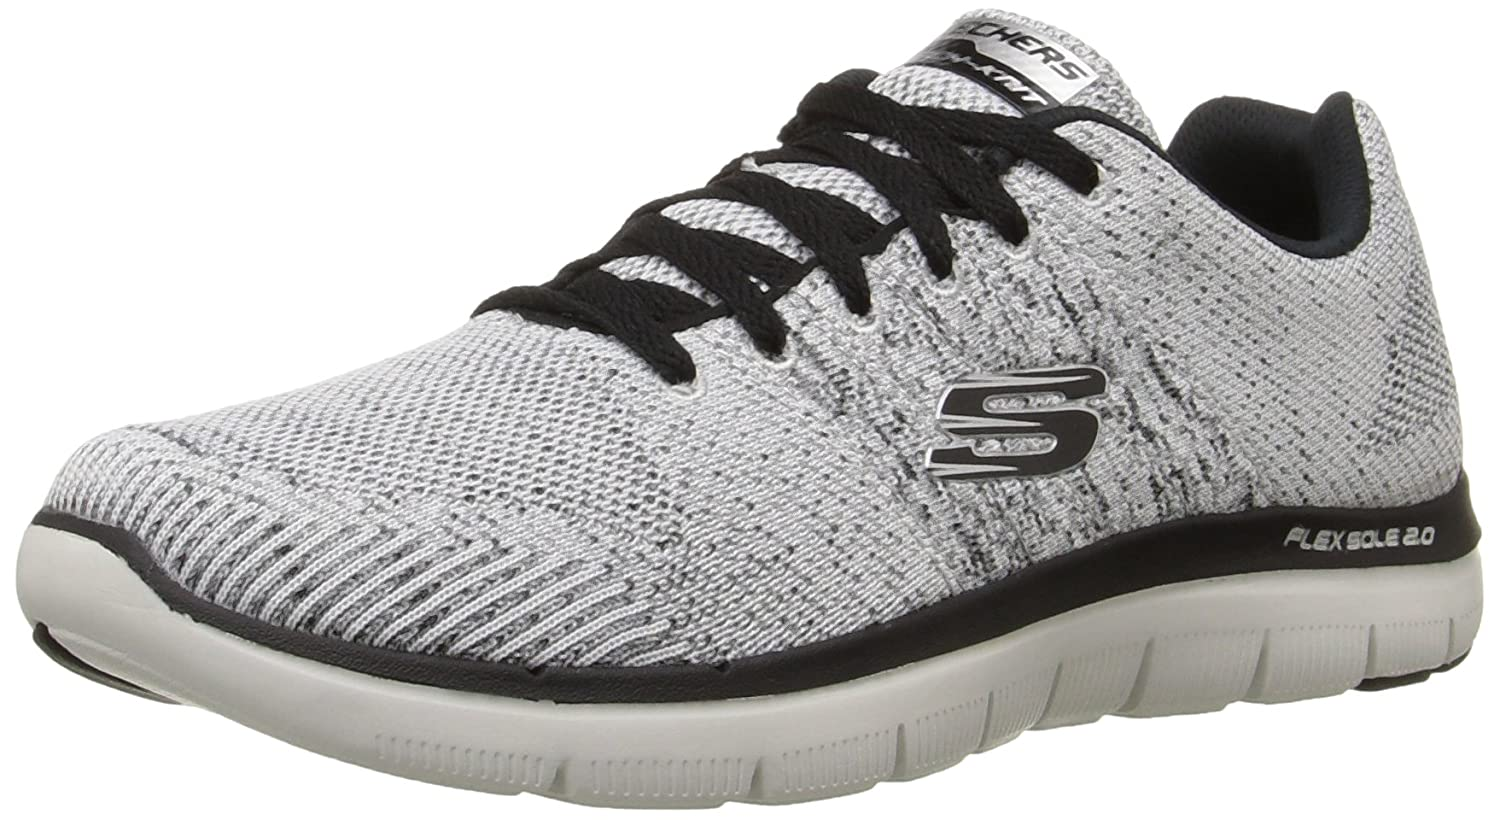 Skechers Flex Advantage 2.0 -Golden Point - Zapatillas Hombre 47 .5 EU Hombres|Blanco/Negro